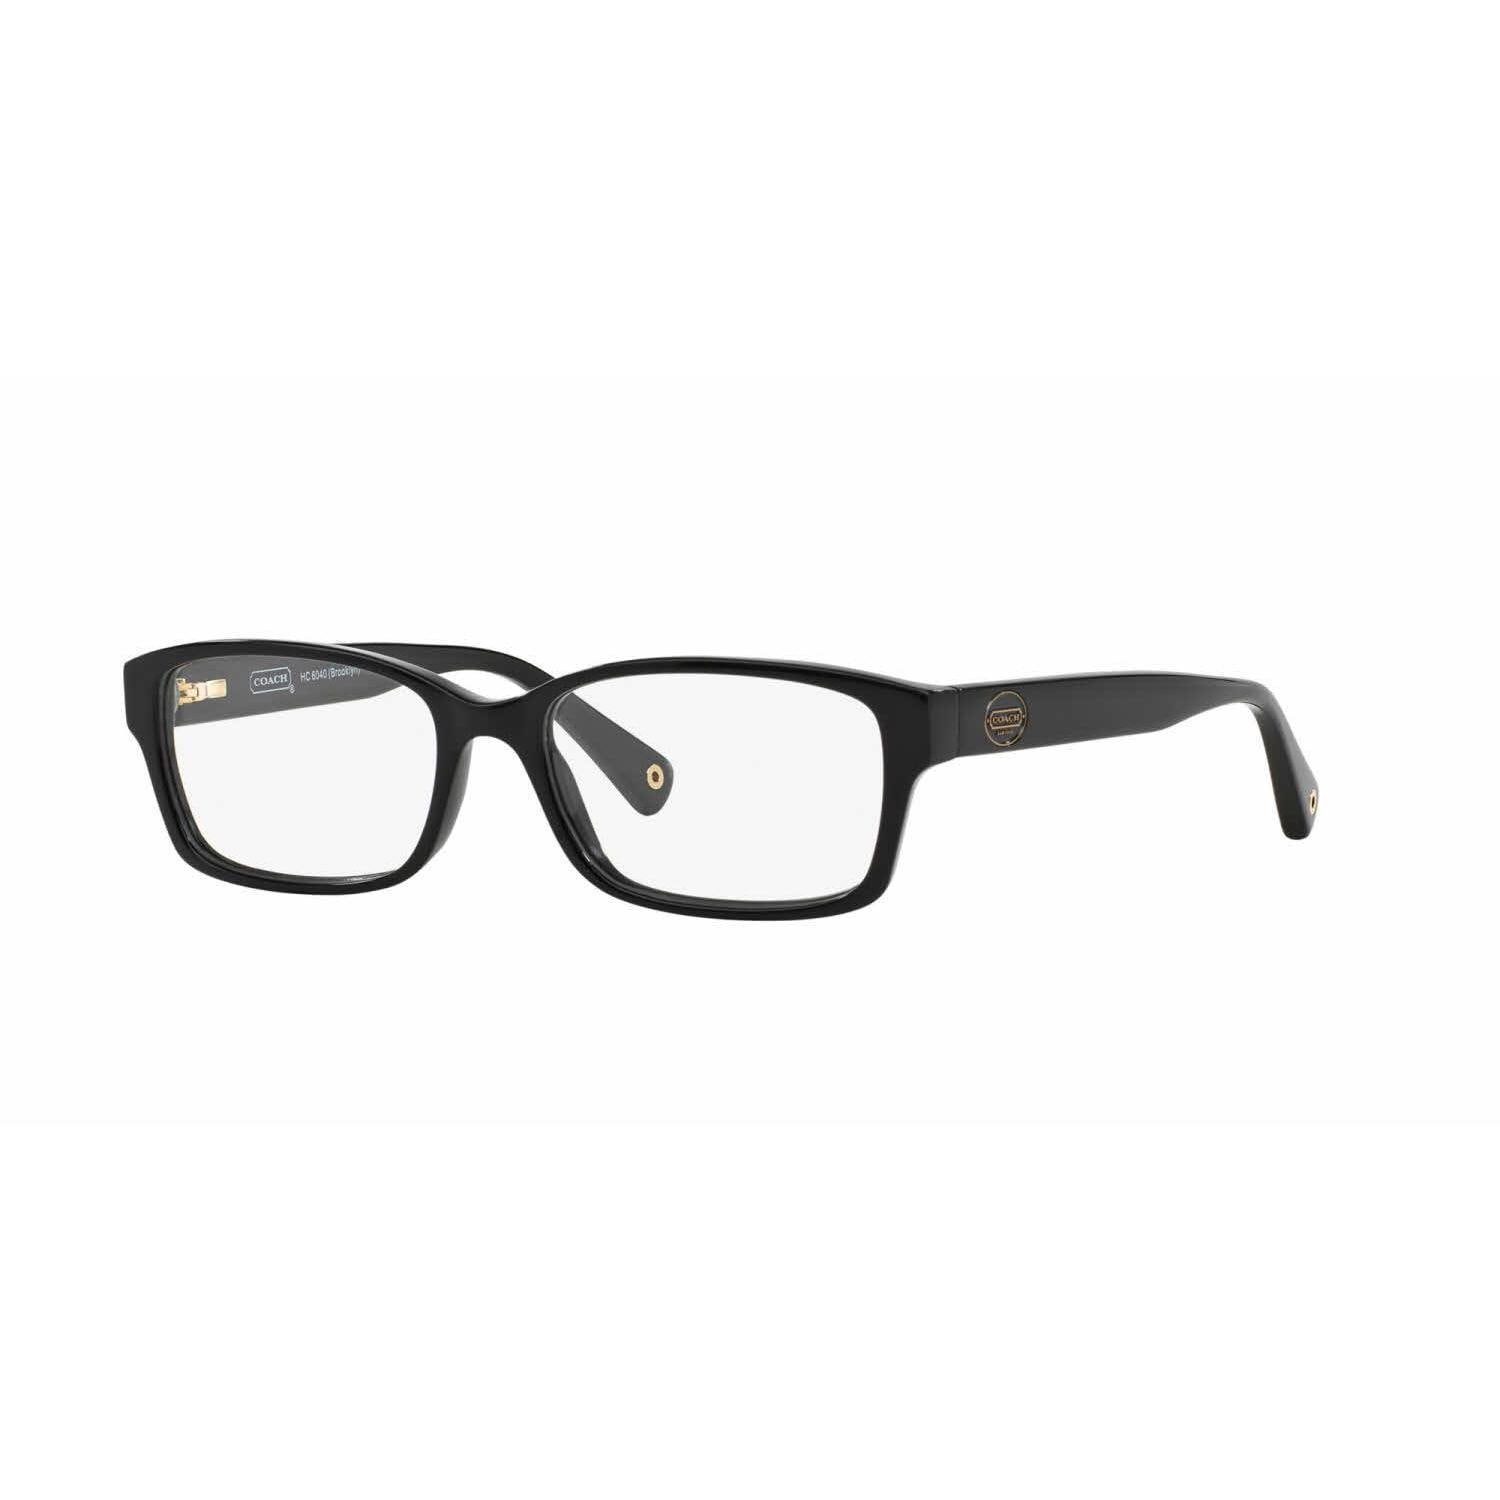 a847a260fe6 Shop Coach Womens HC6040 BROOKLYN 5002 Black Plastic Rectangle Eyeglasses -  Free Shipping Today - Overstock.com - 13613268